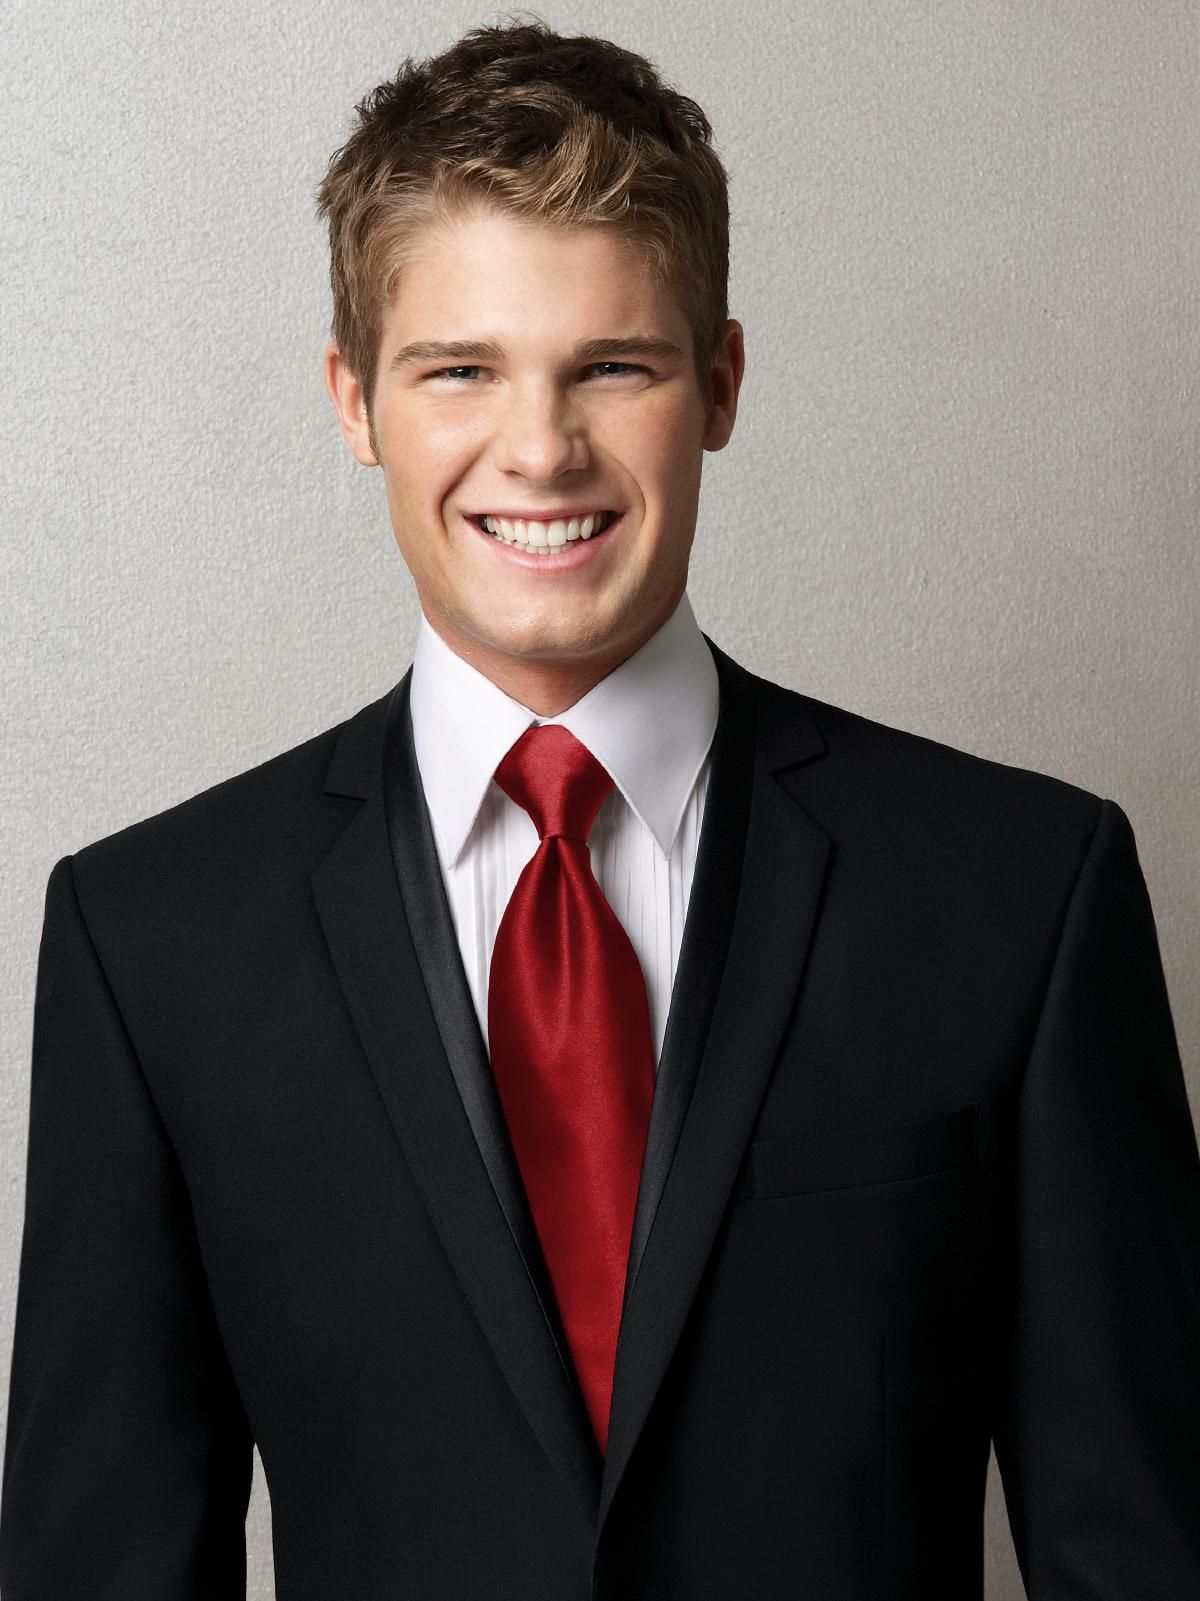 Groom And Groomsmen Tux With Red Tie